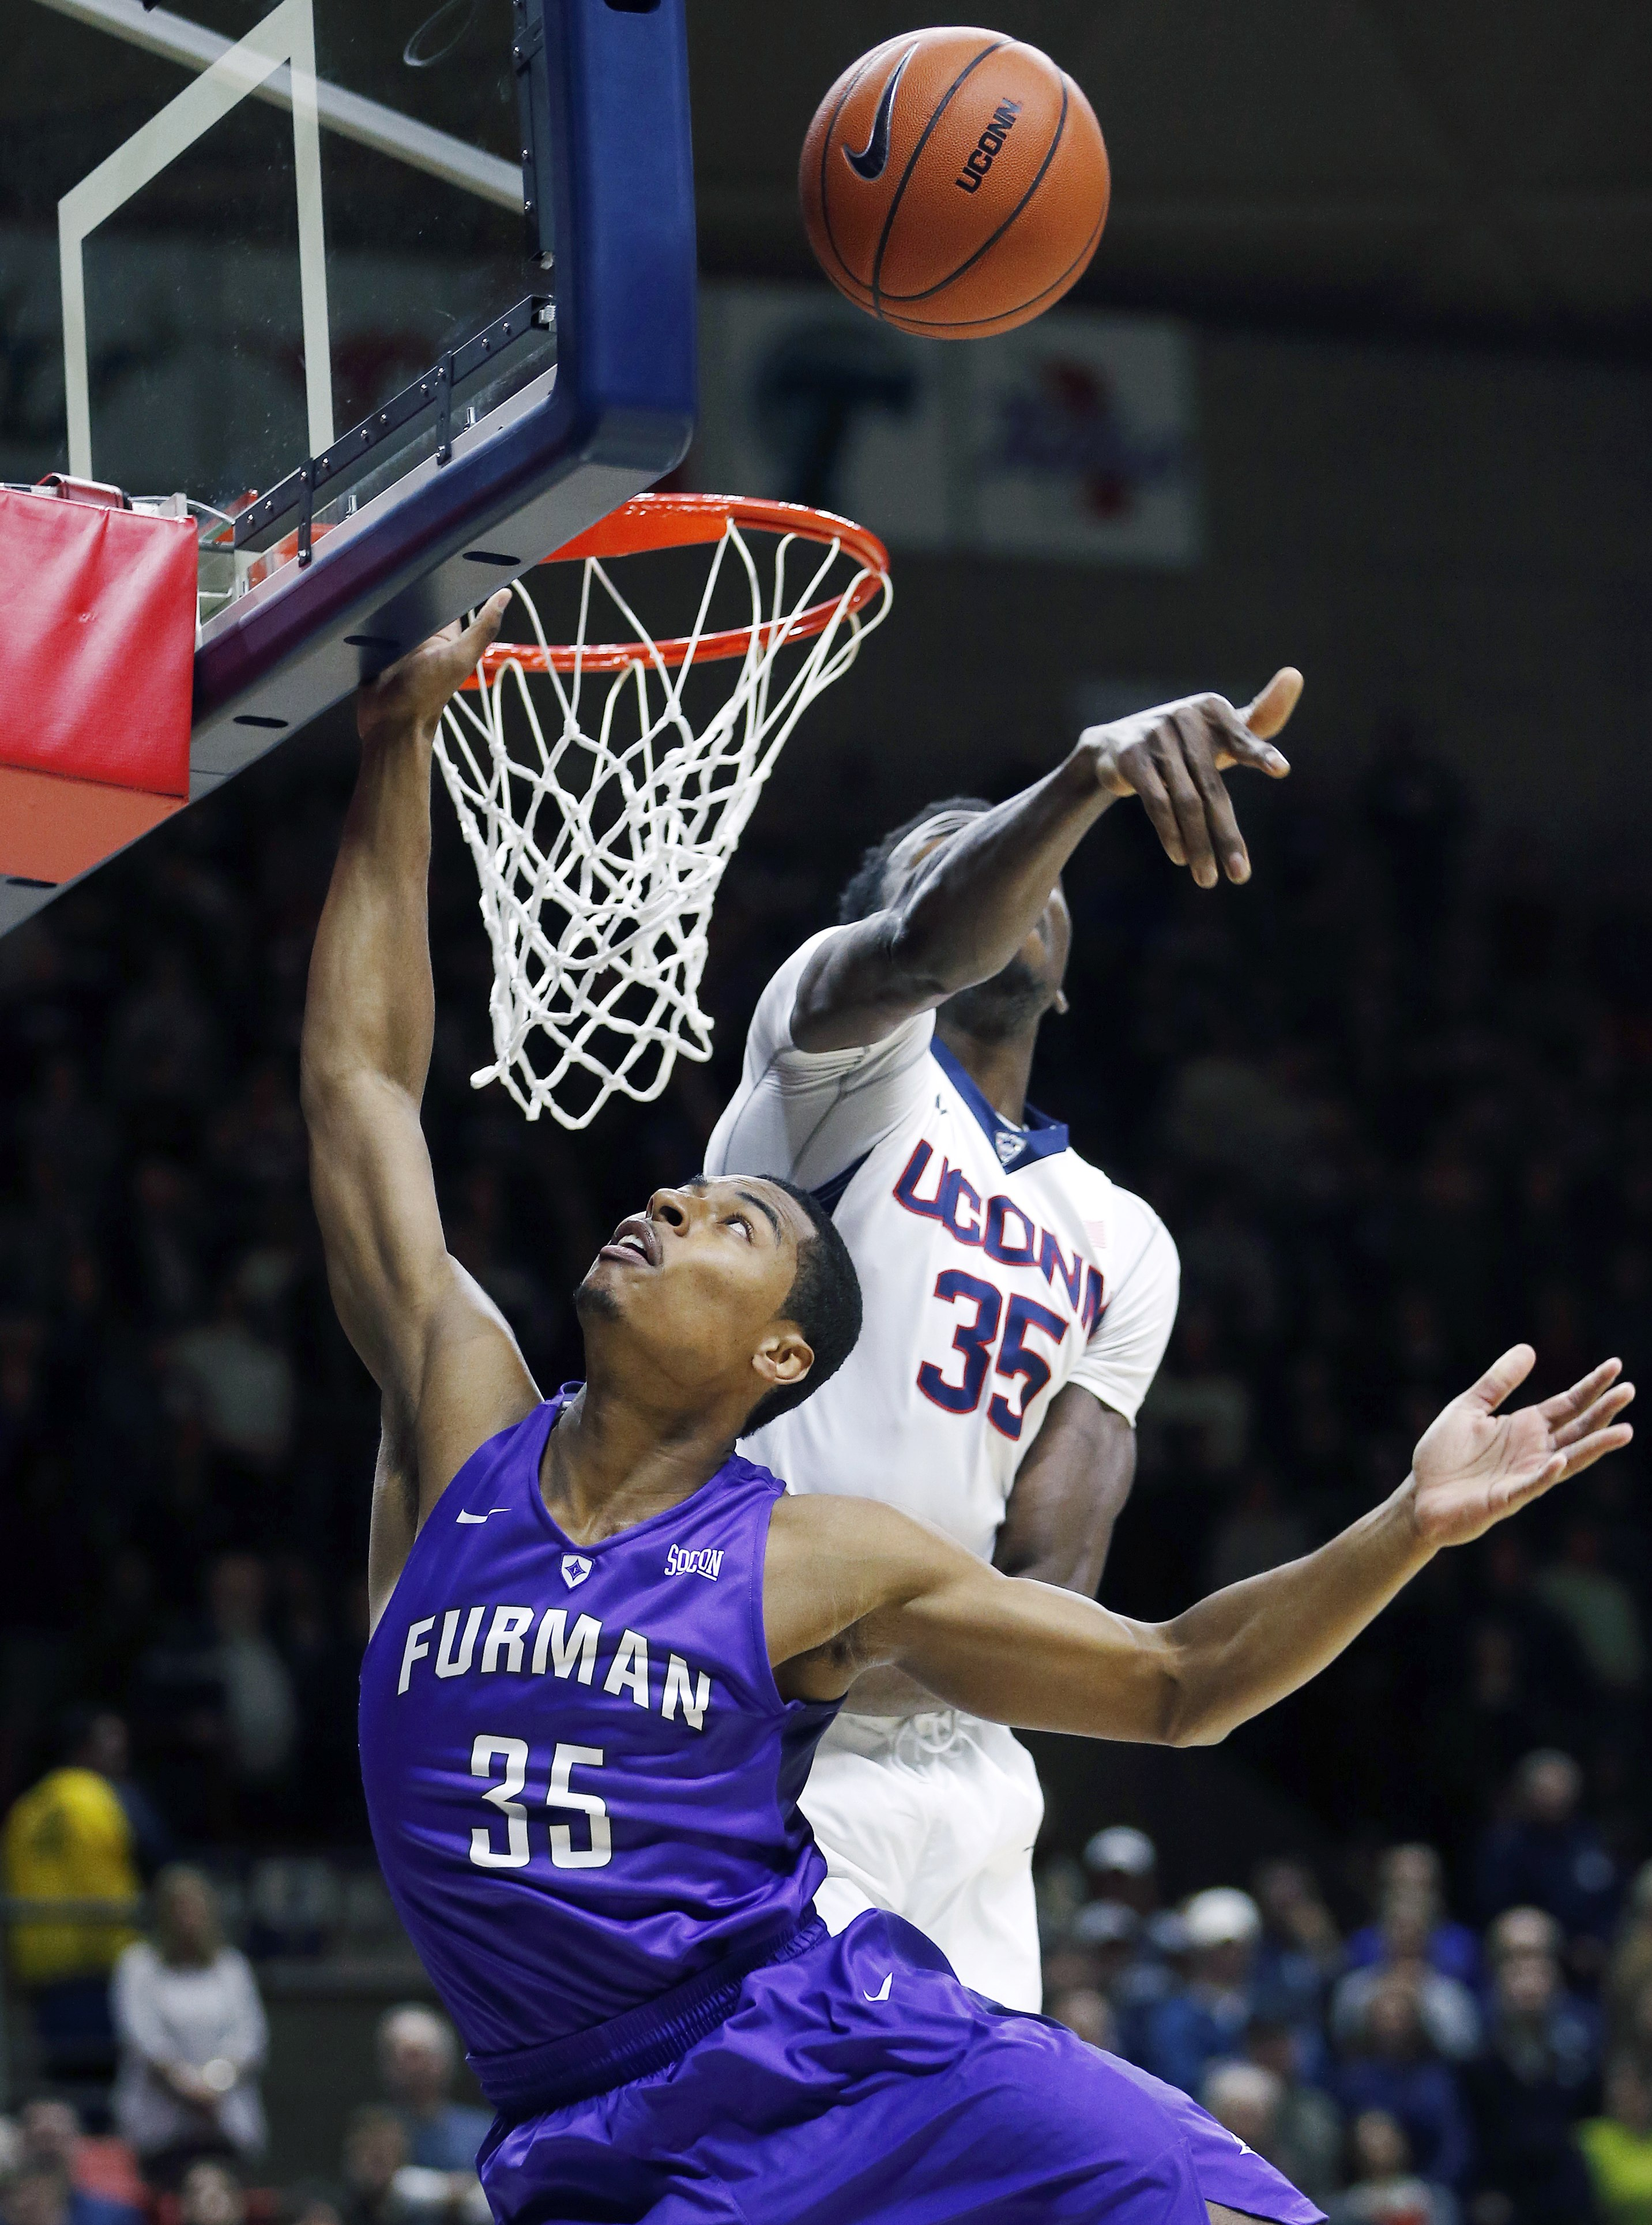 Connecticut's Amida Brimah, top, blocks a shot by Furman's Daniel Fowler during the first half of an NCAA college basketball game in Storrs, Conn., Saturday, Nov. 21, 2015. (AP Photo/Michael Dwyer)